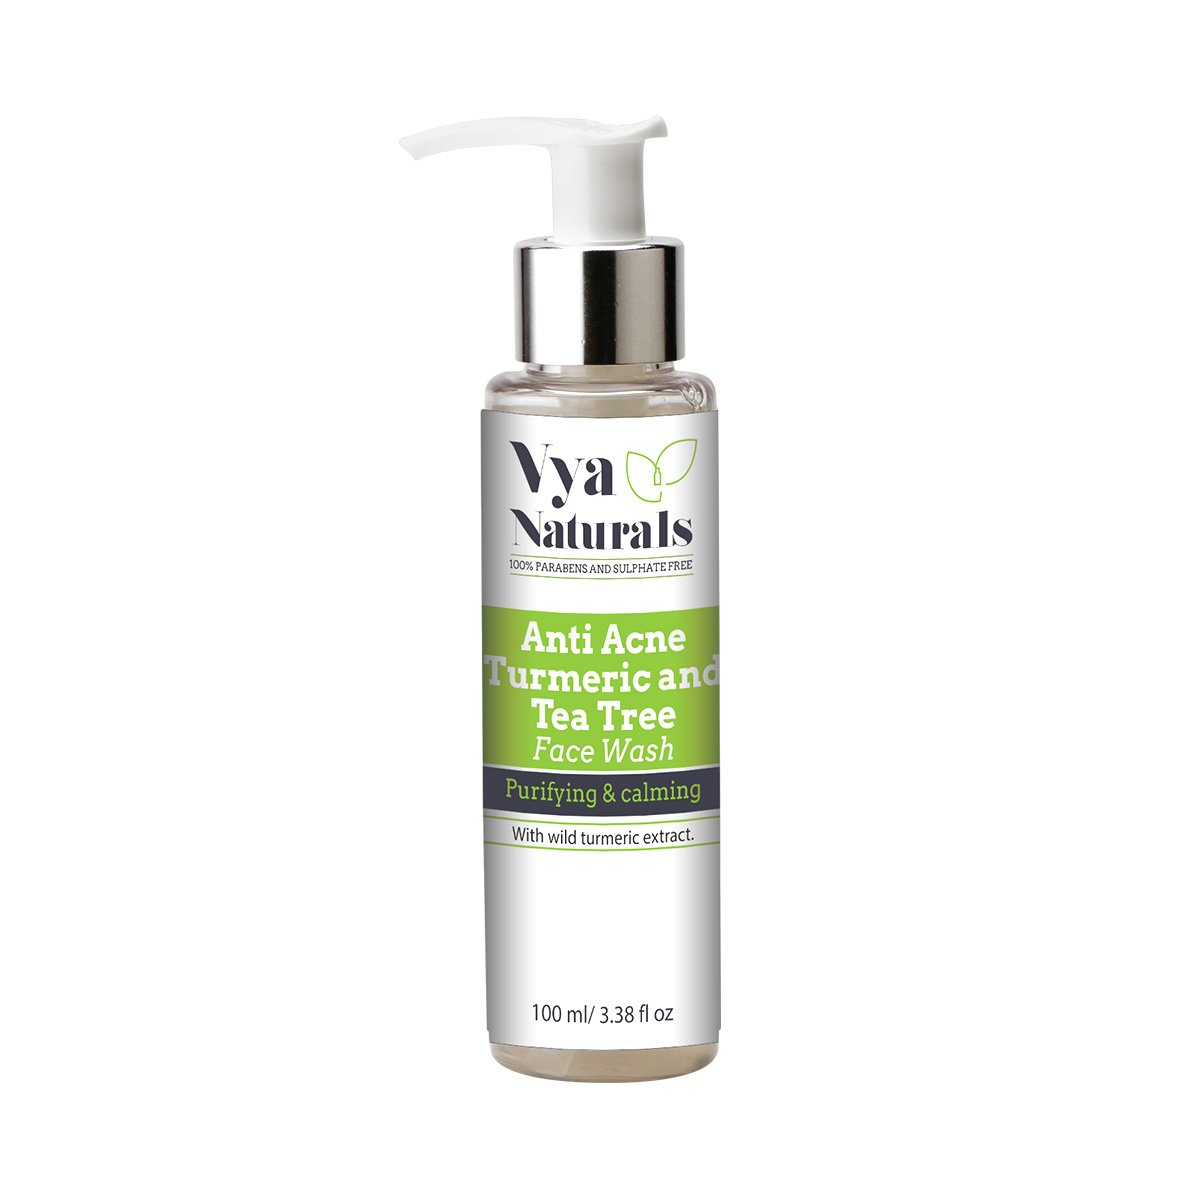 Vya Naturals 100 Parabens And Sulphate Free Anti Acne Turmeric Pixy Brightening Facial Foam Ml Tea Tree Face Wash 100ml Beauty